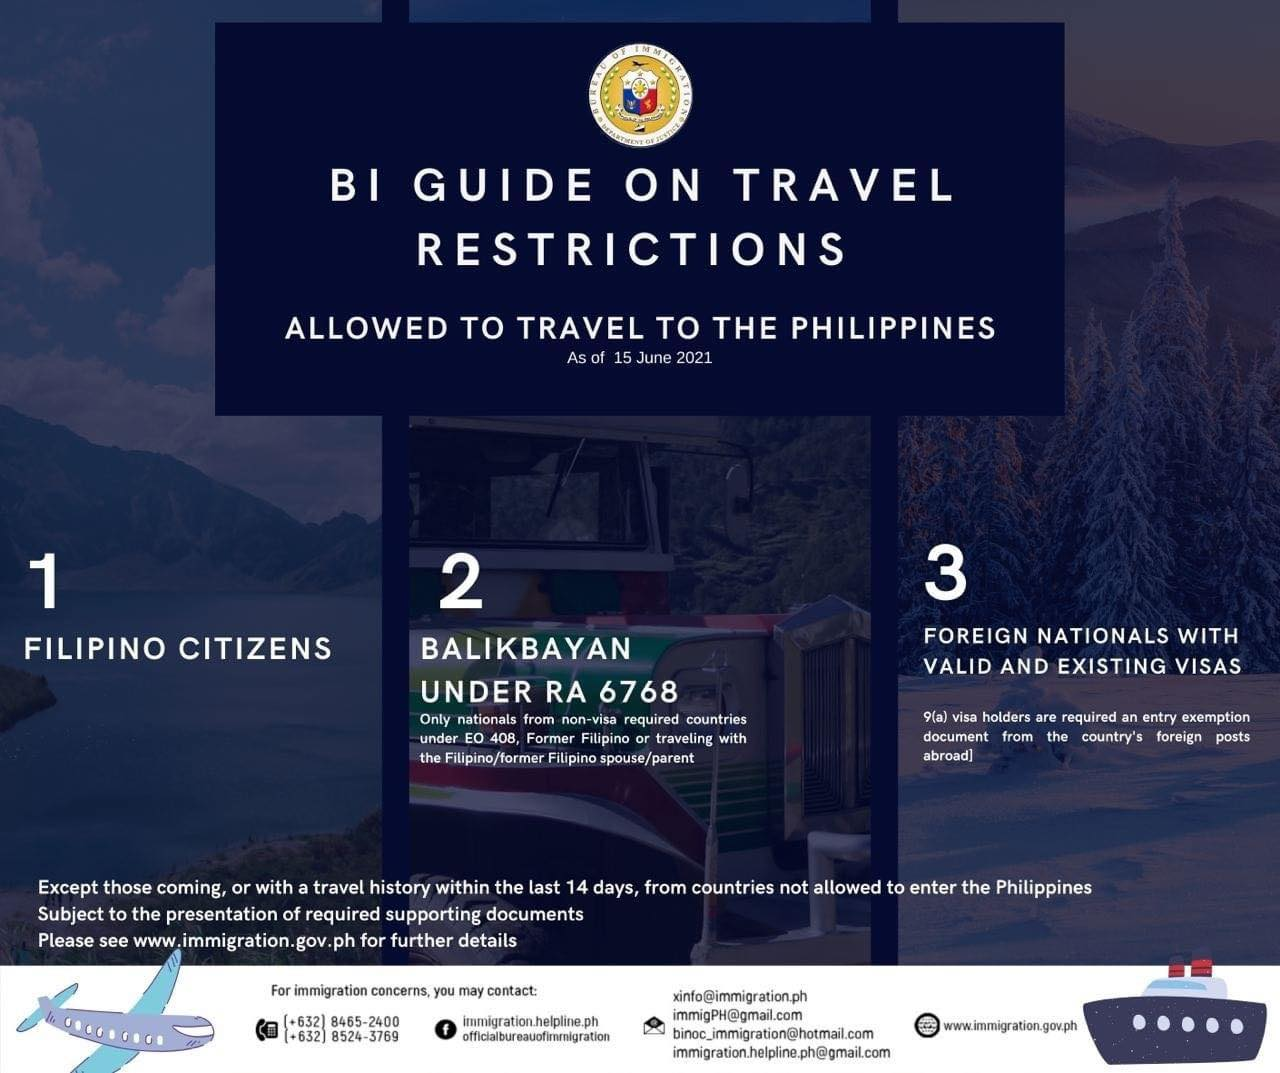 Philippine Bureau of Immigration releases Guide on Travel Restrictions amid Pandemic